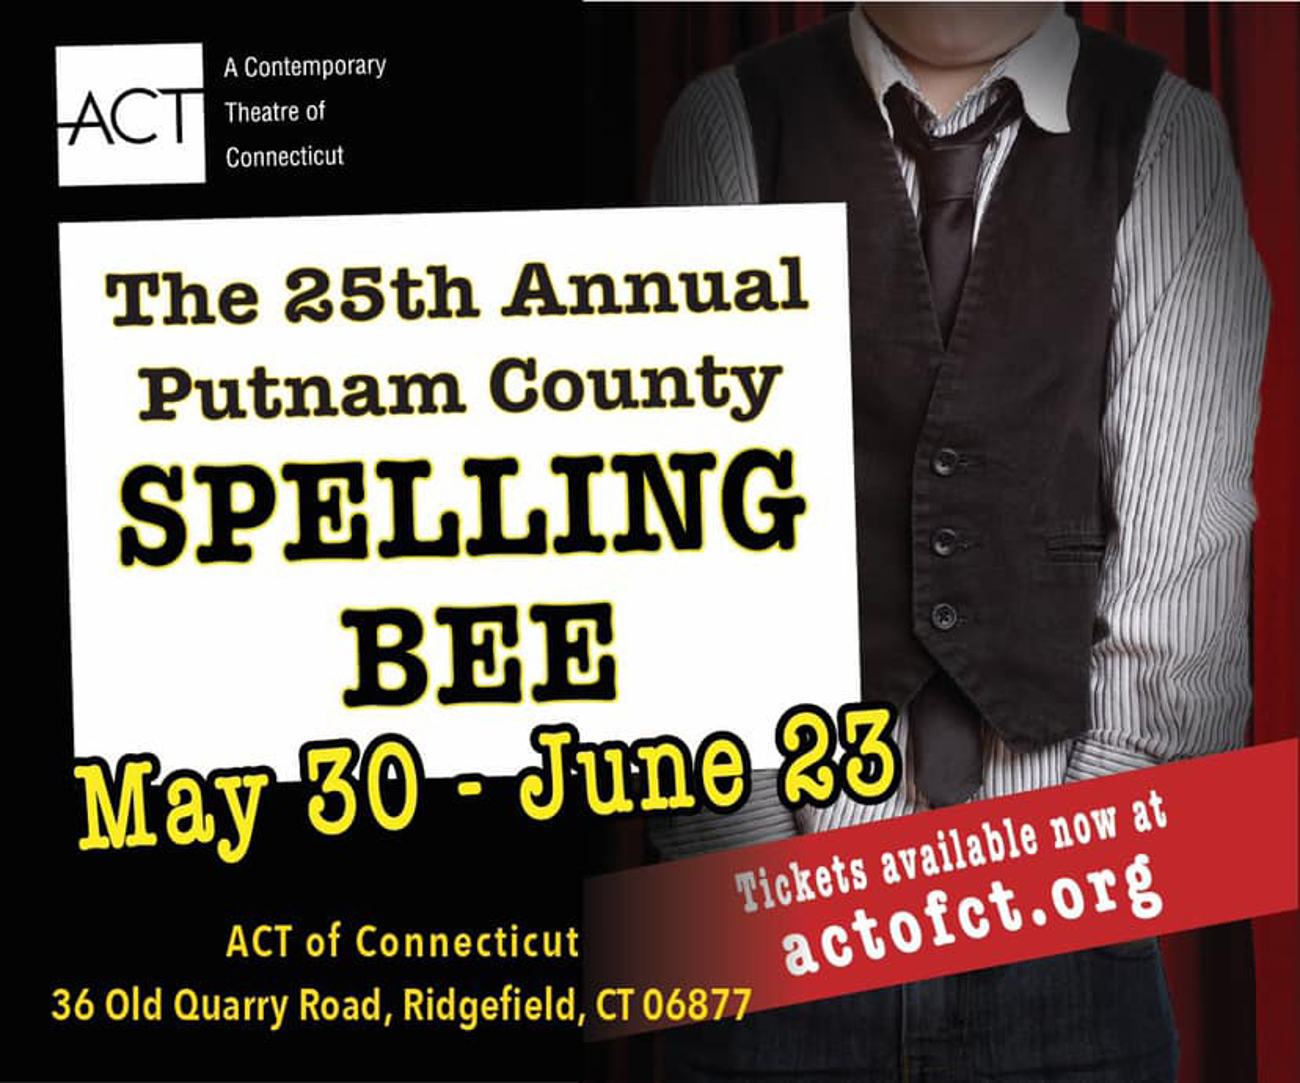 BWW Review: THE 25TH ANNUAL PUTNAM COUNTY SPELLING BEE at ACT Of Connecticut